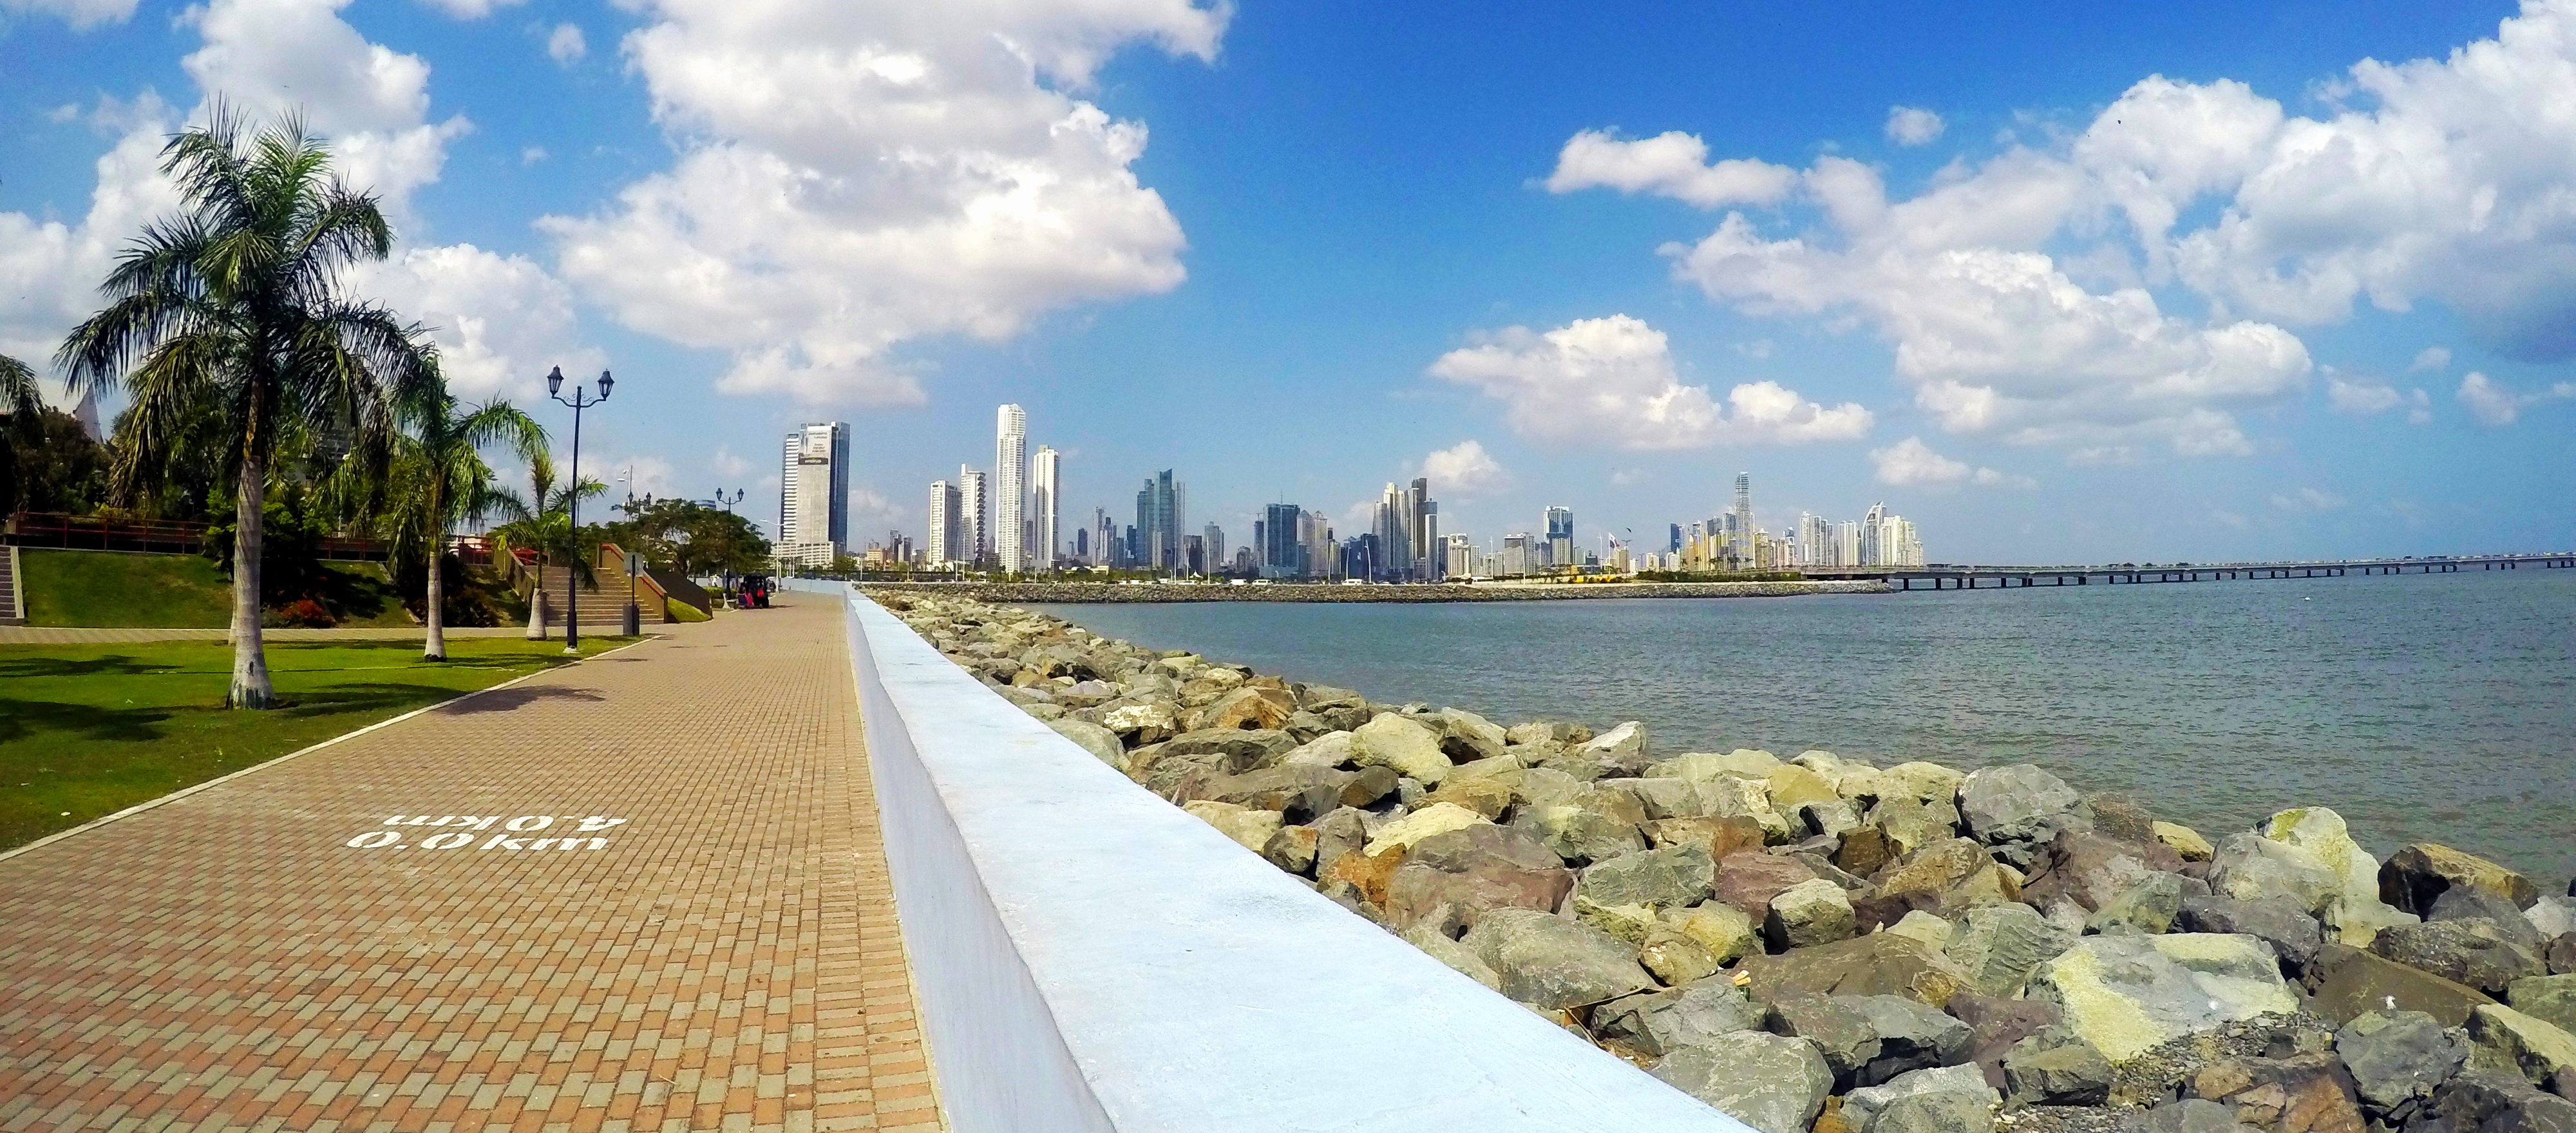 Panama Is That Small Long Stretch Of Land Connects Central America To South It Has Fabulous Beaches Spanish Ruins Beautiful Nature